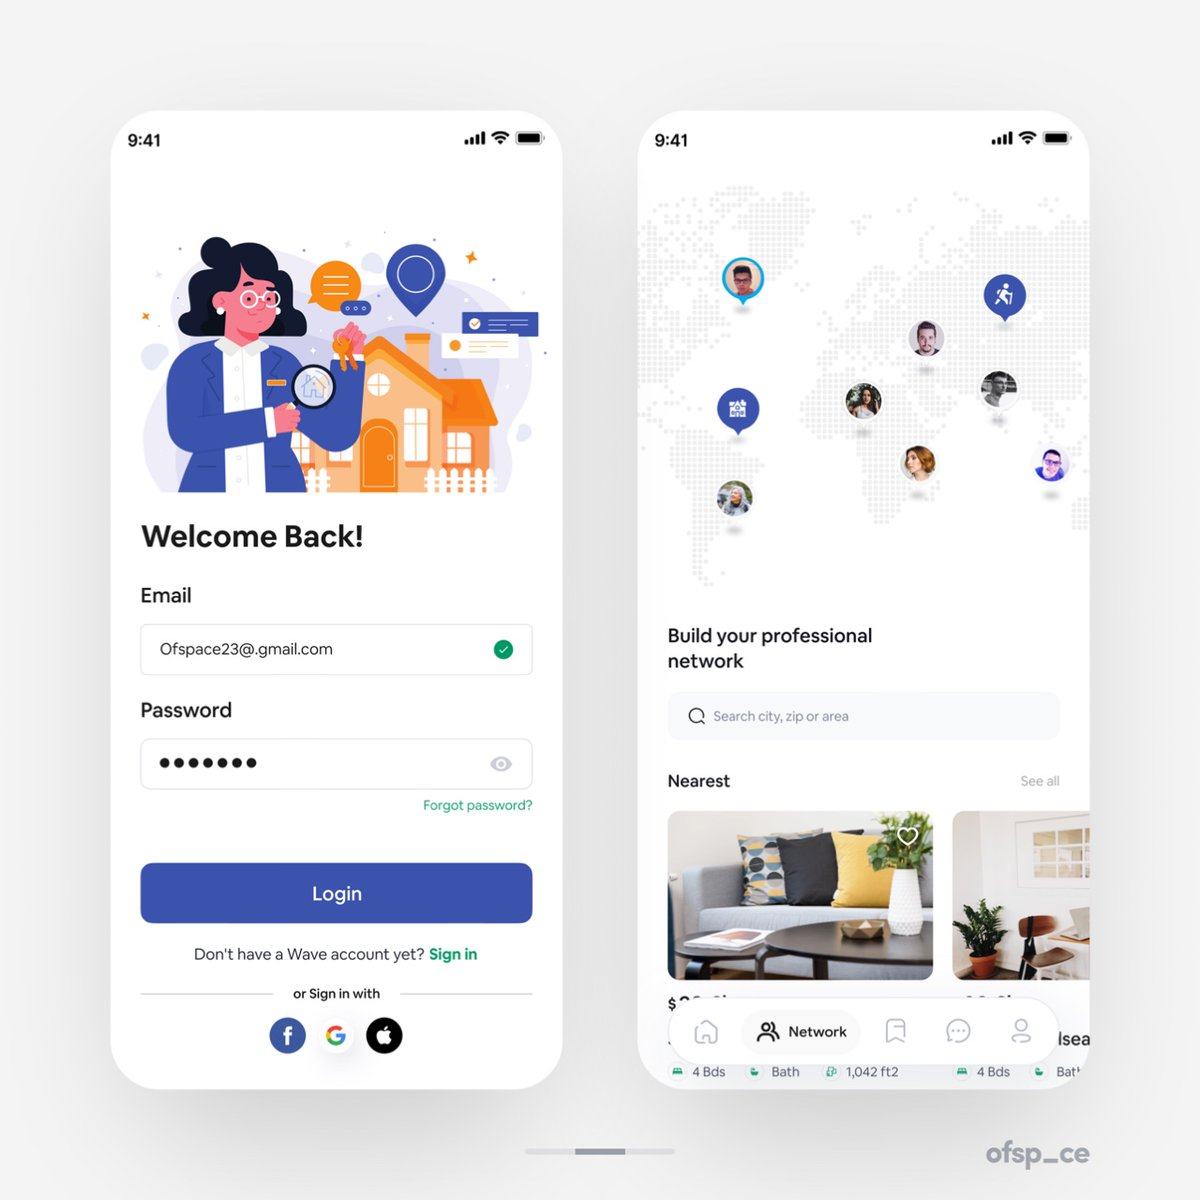 Real Estate App! Project Enquires: hello@ofspace.co  #webdesigner #uidesigner #interface #graphicdesign #webdesignservices #webdesignagency #branding #uxdesign #house #houses #investmentproperty #realestateagent #realtorlife #realestateagents #management #consulting #expediting